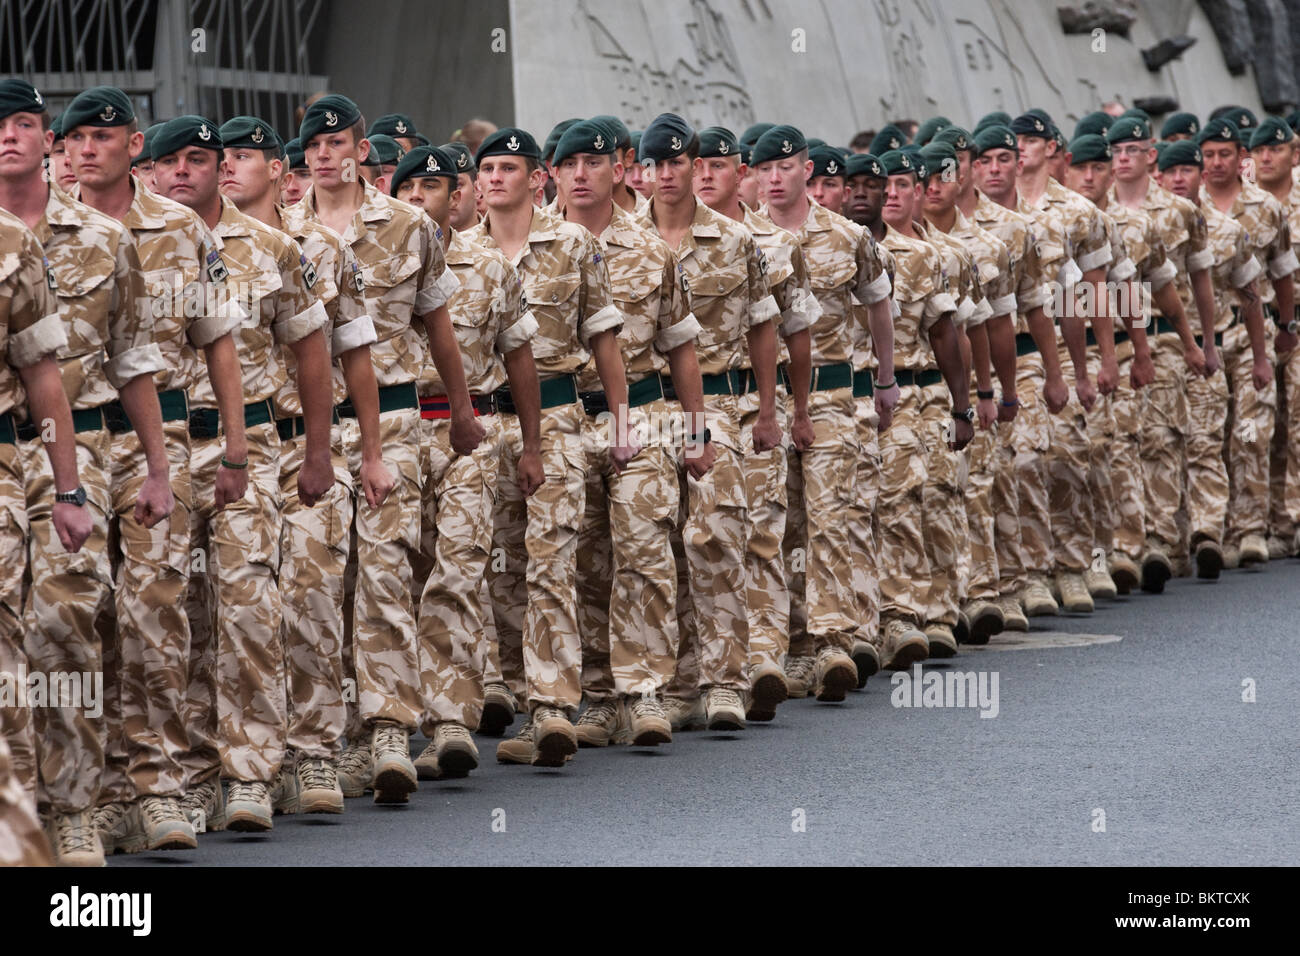 Edinburgh-based soldiers return home after 6 month tour in Afghanistan. - Stock Image